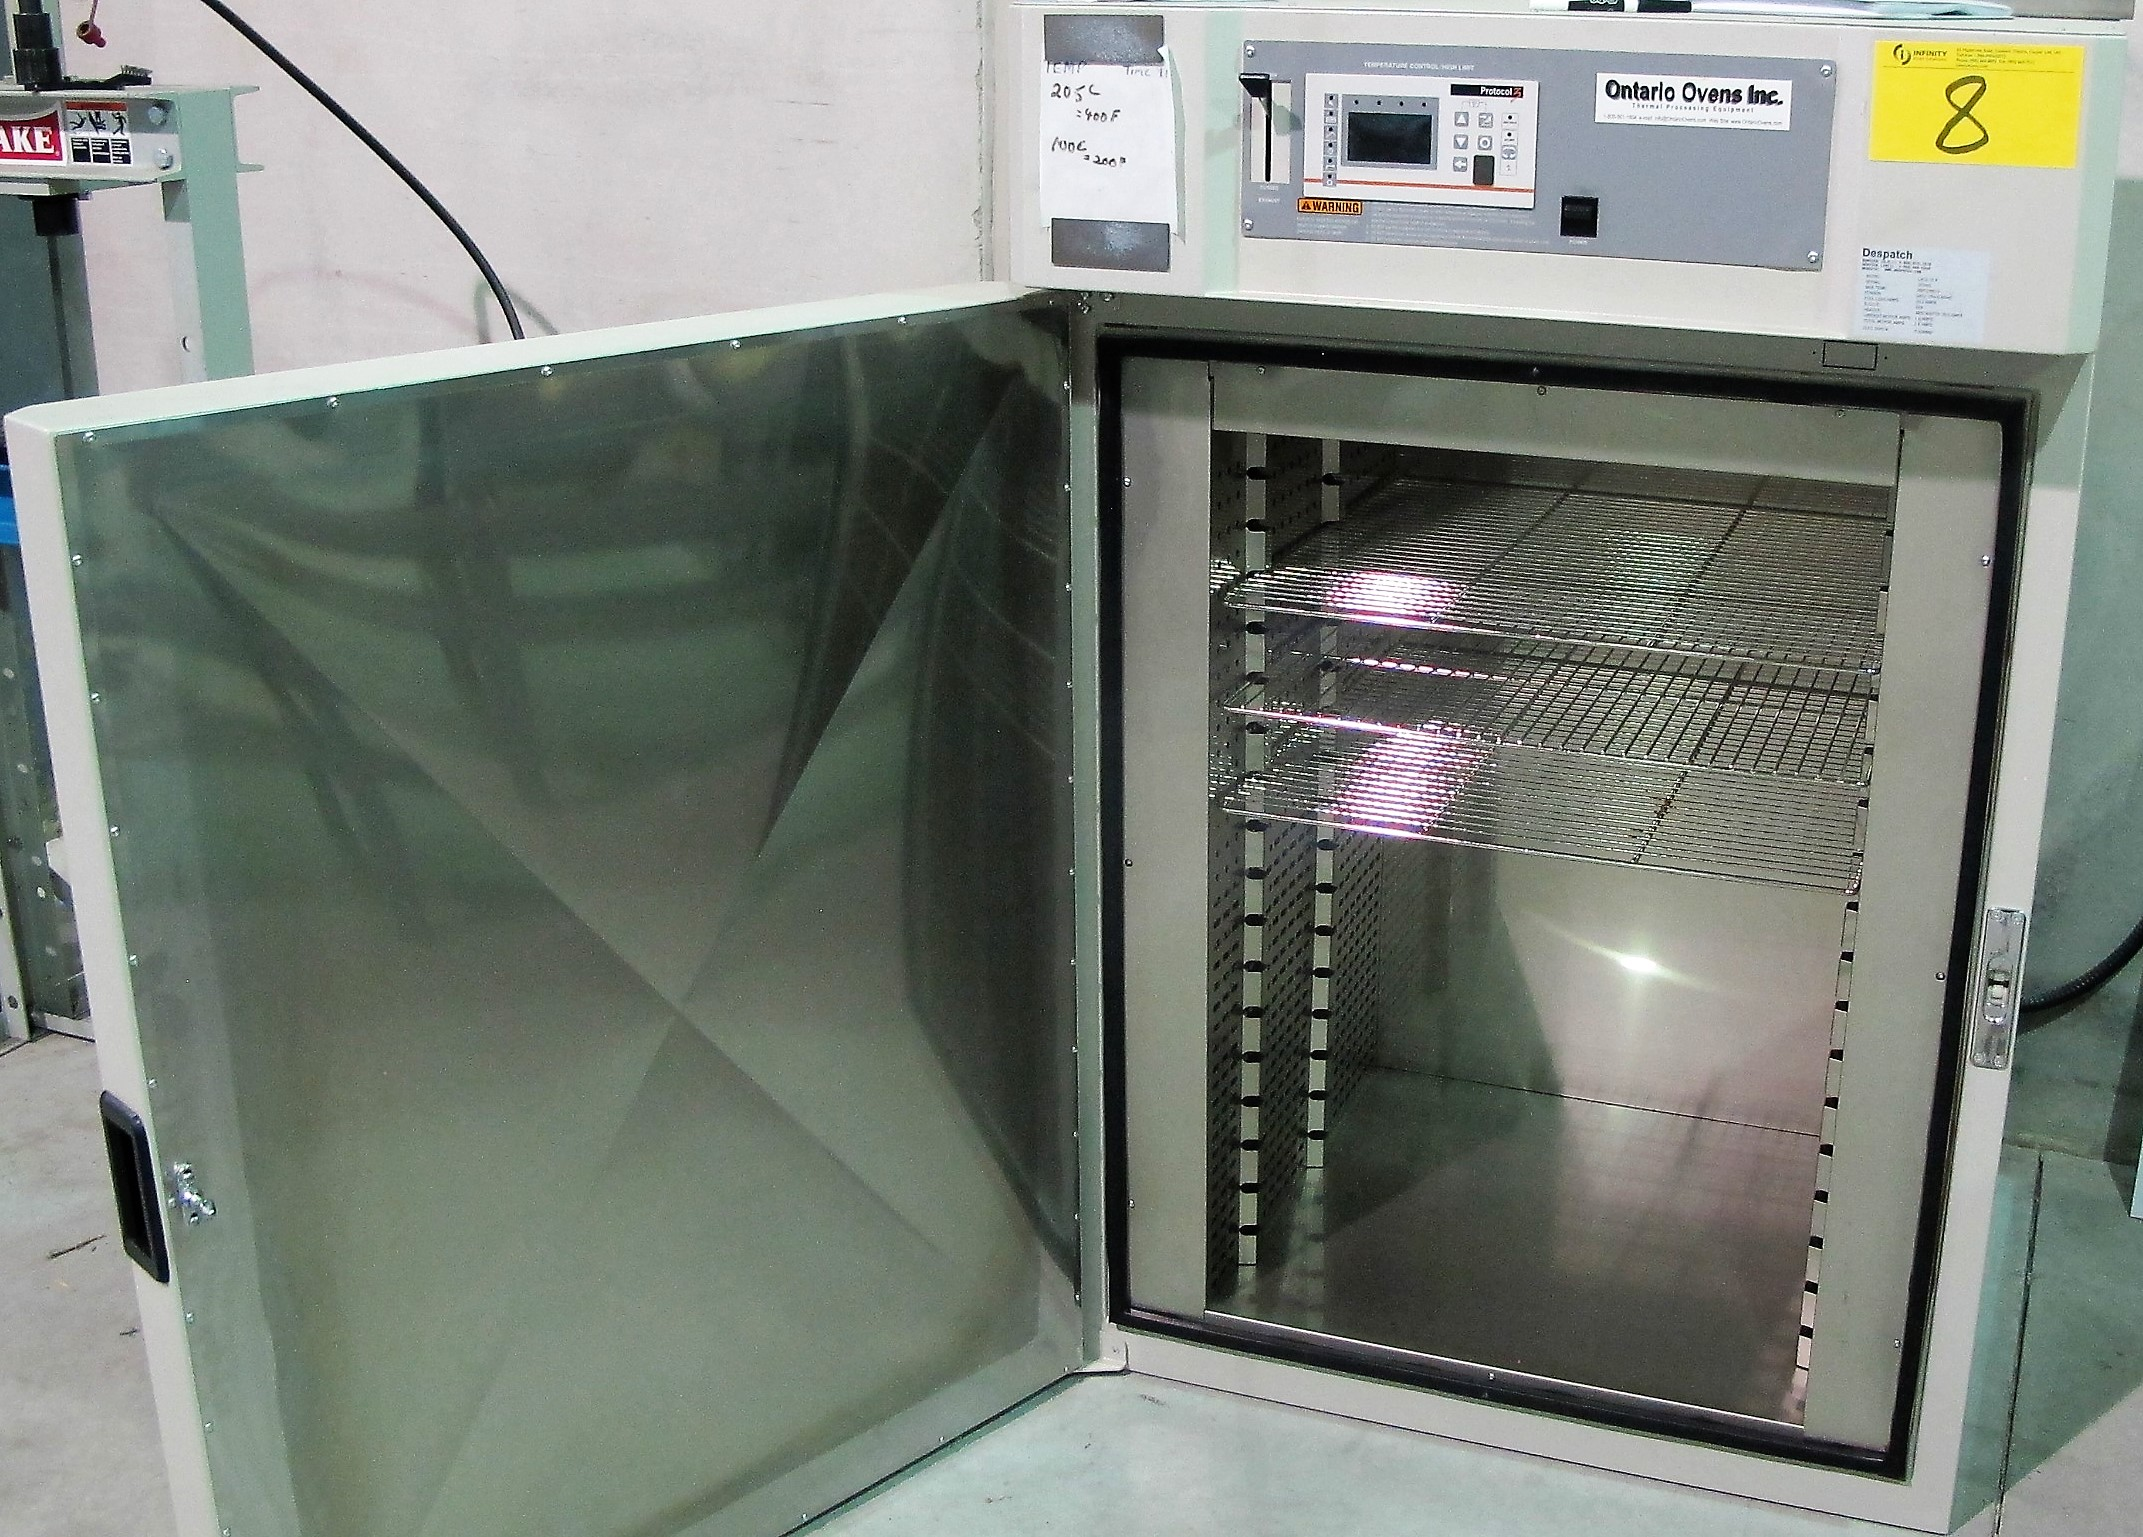 Lot 8 - DESPATCH LAC2-12-8 OVEN, 260C/500F MAX W/PROTOCOL 3 DIGIT5AL CONTROL, STAINLESS INTERIOR